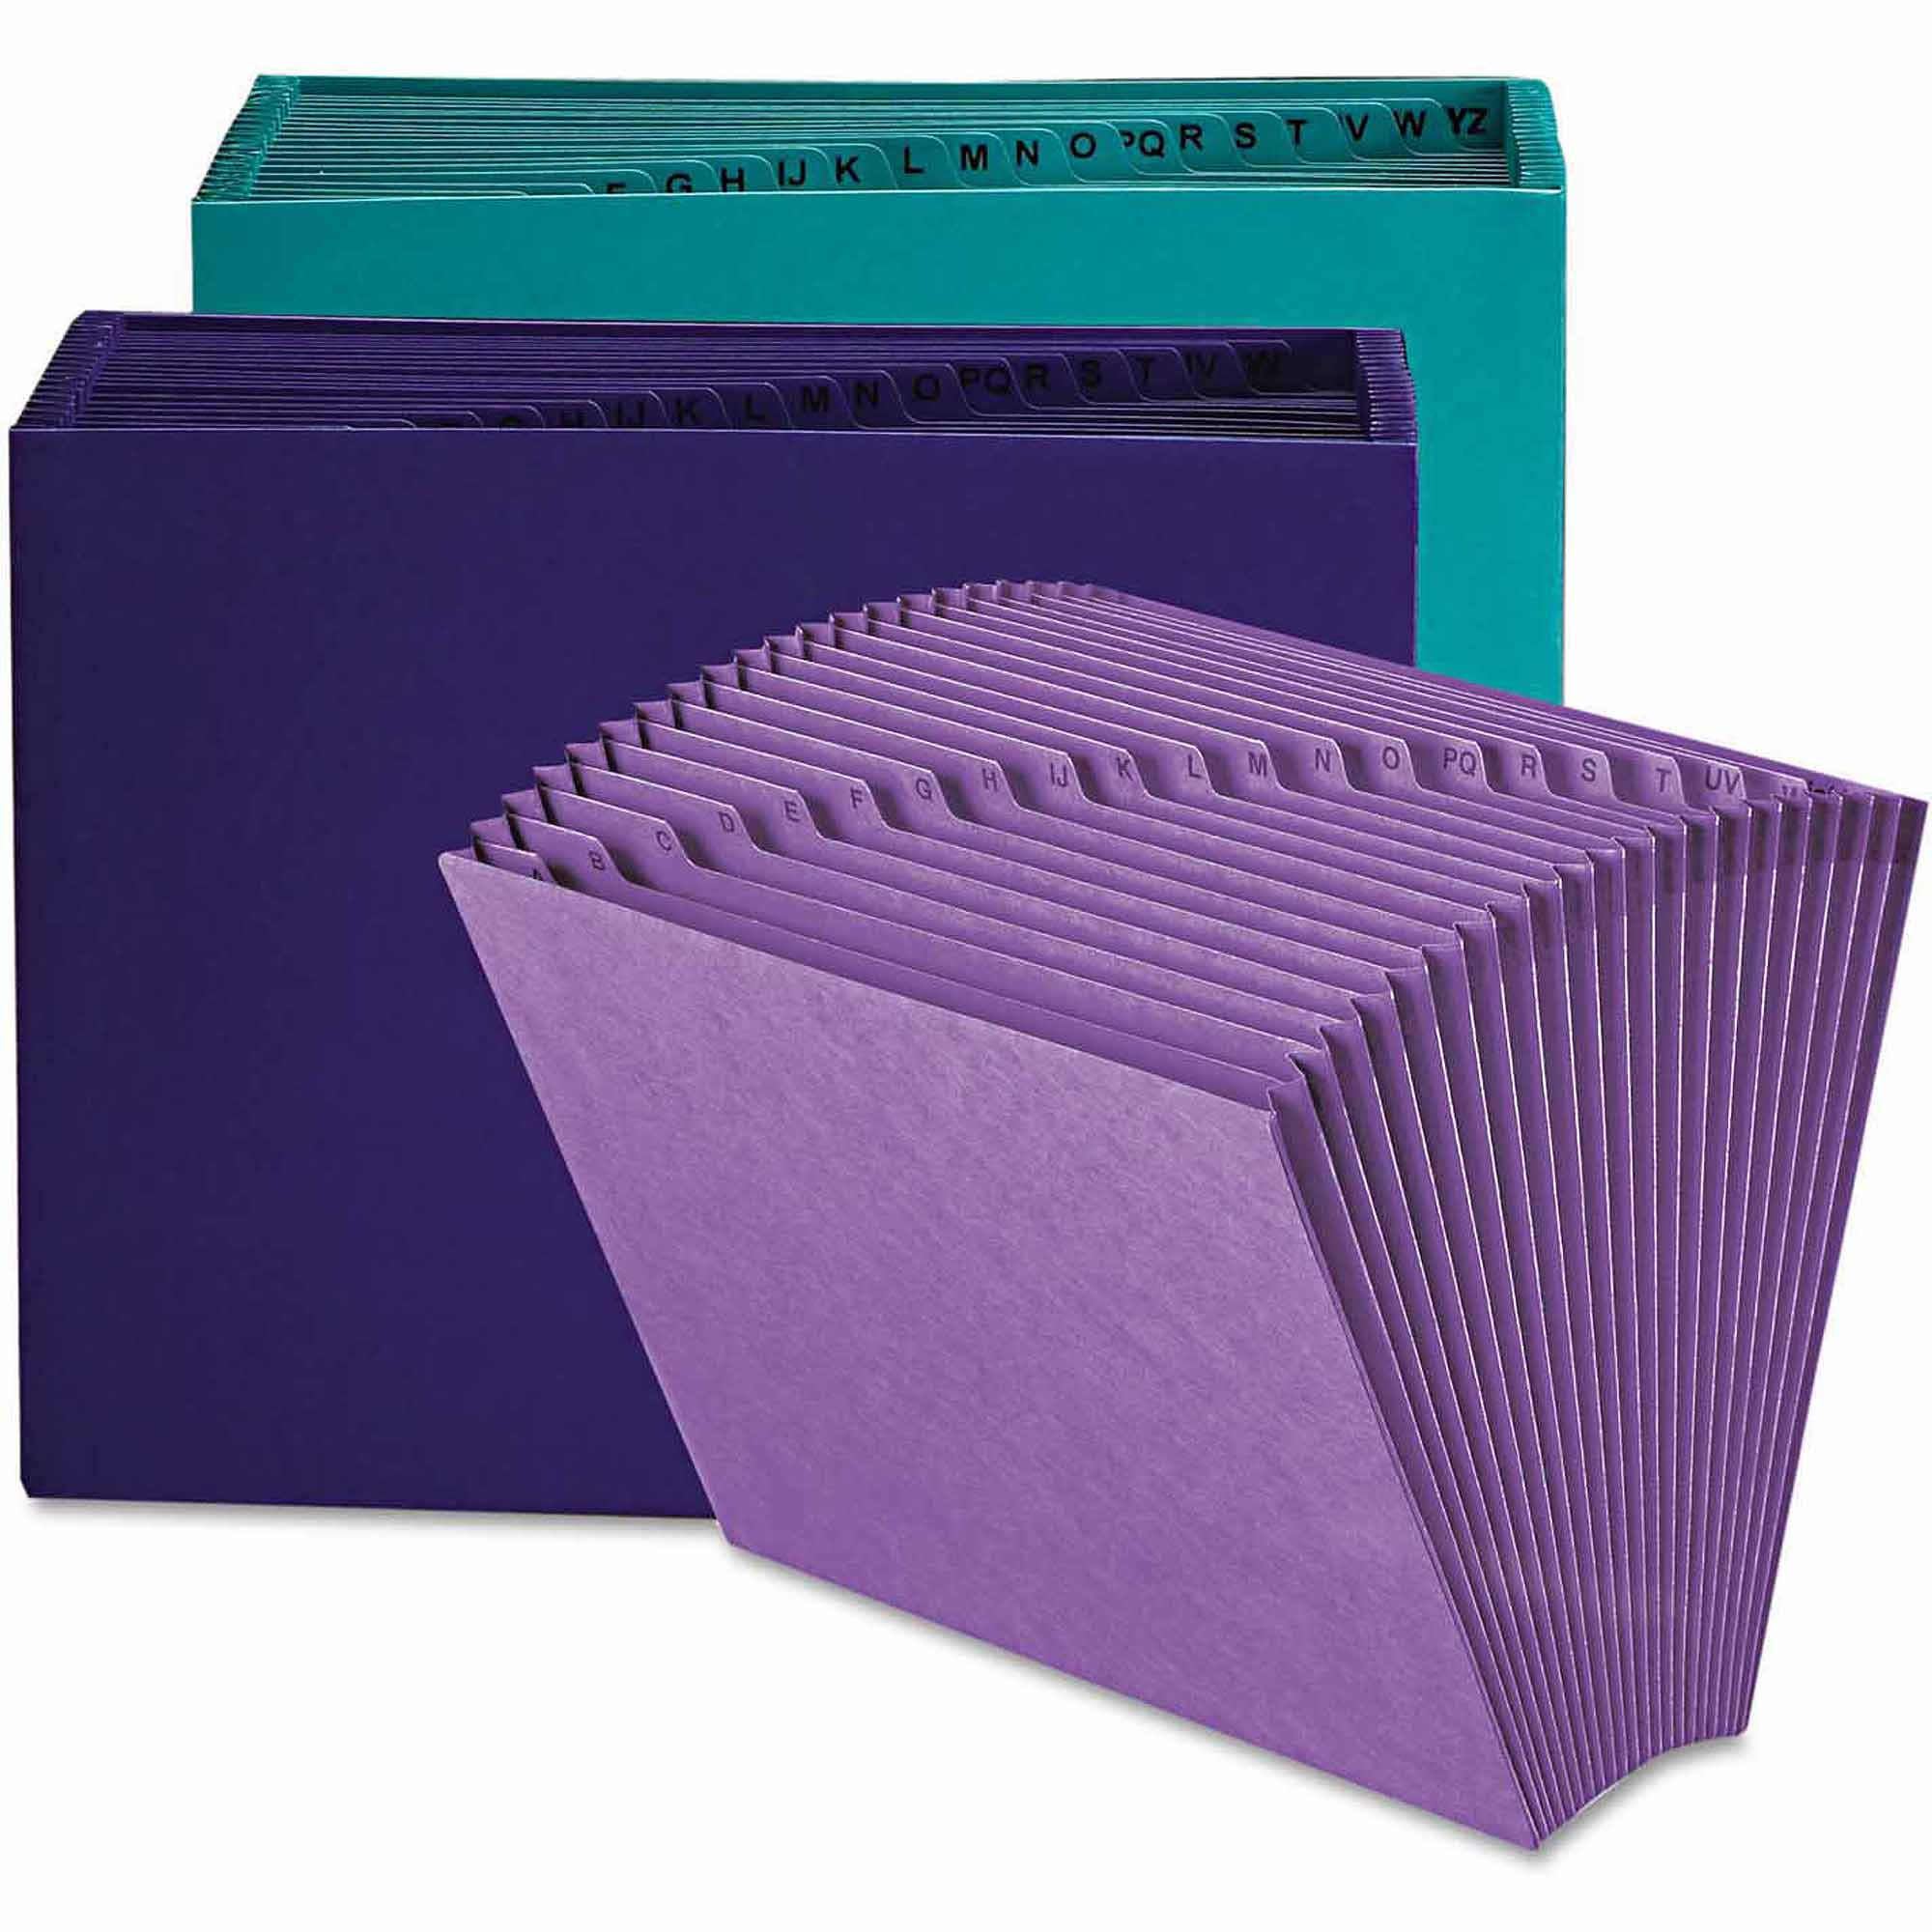 Smead Heavy-Duty A-Z Open Top Accordion Expanding Files, 21 Pockets, Letter, Teal